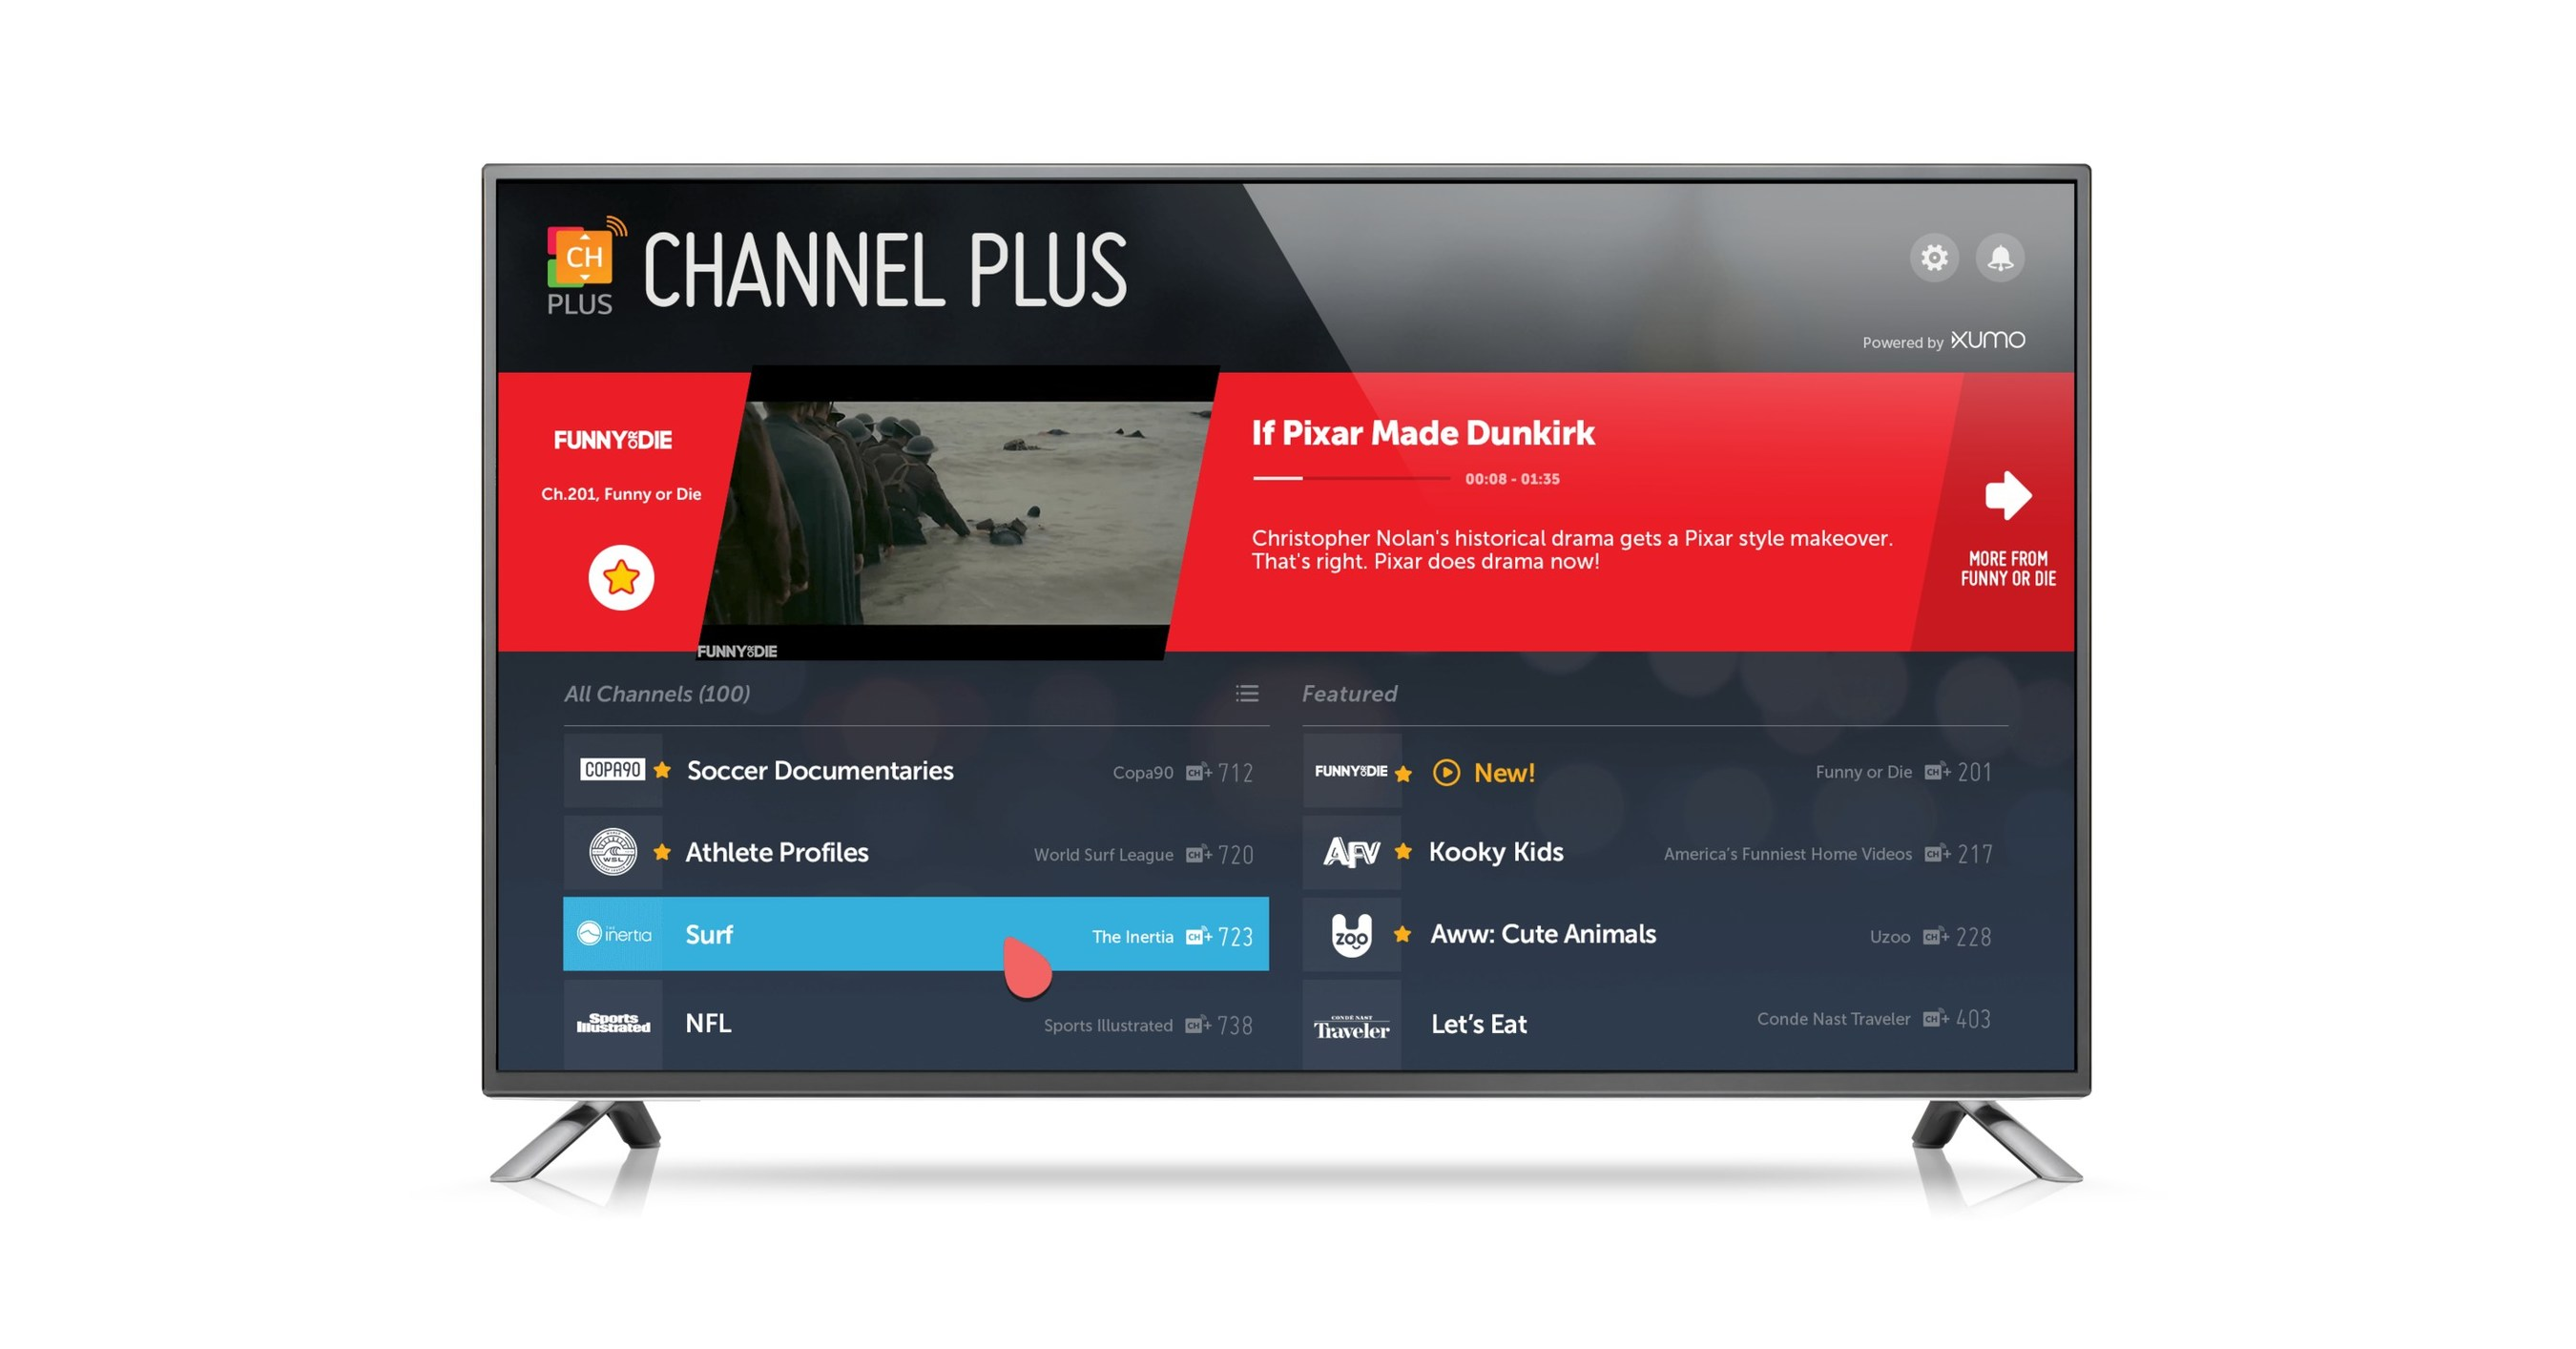 lg 39 s webos platform continues 2017 expansion with launch of channel plus and dazn sports streaming. Black Bedroom Furniture Sets. Home Design Ideas